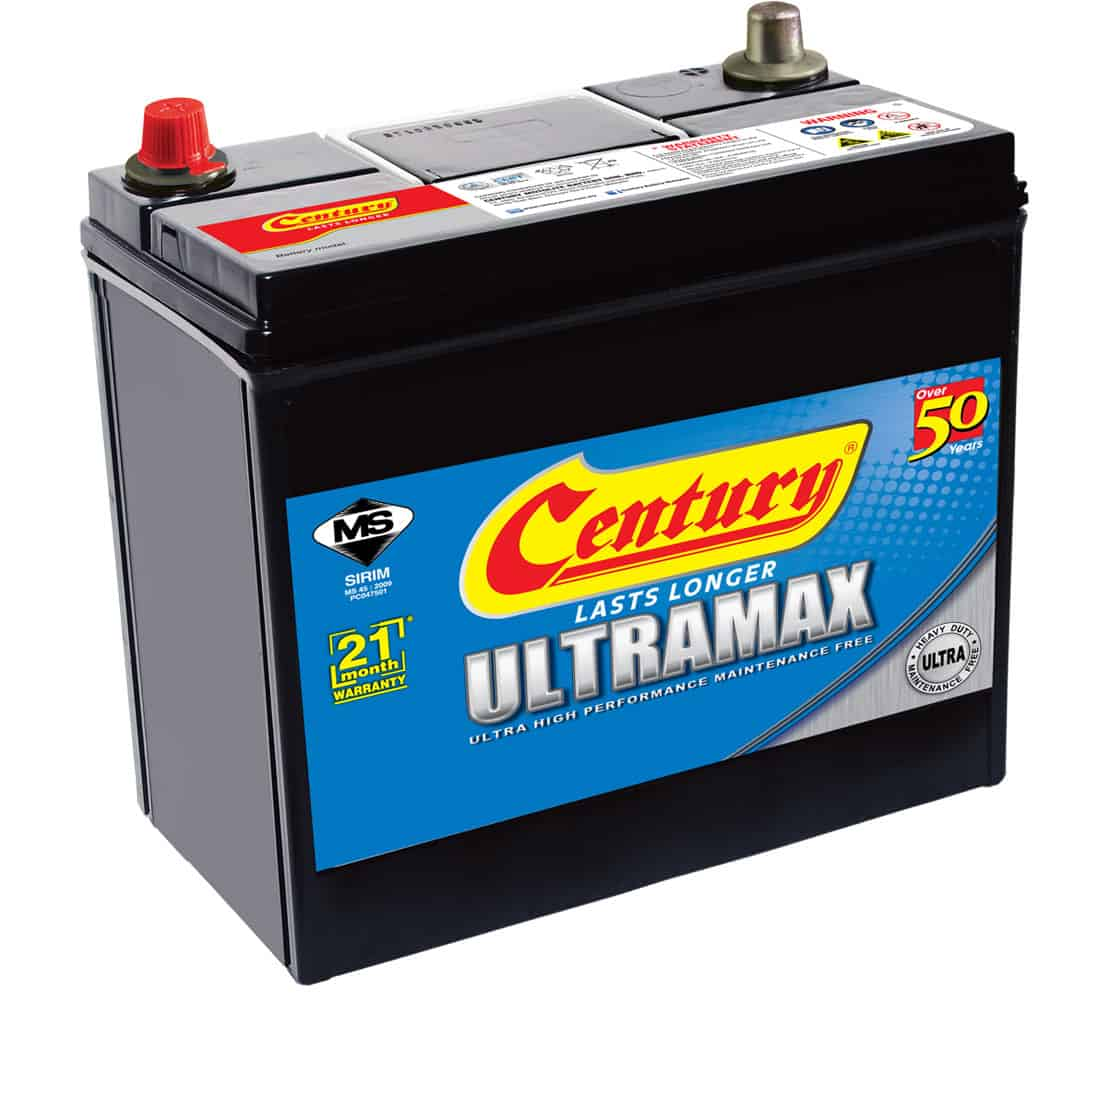 Century Ultramax Battery